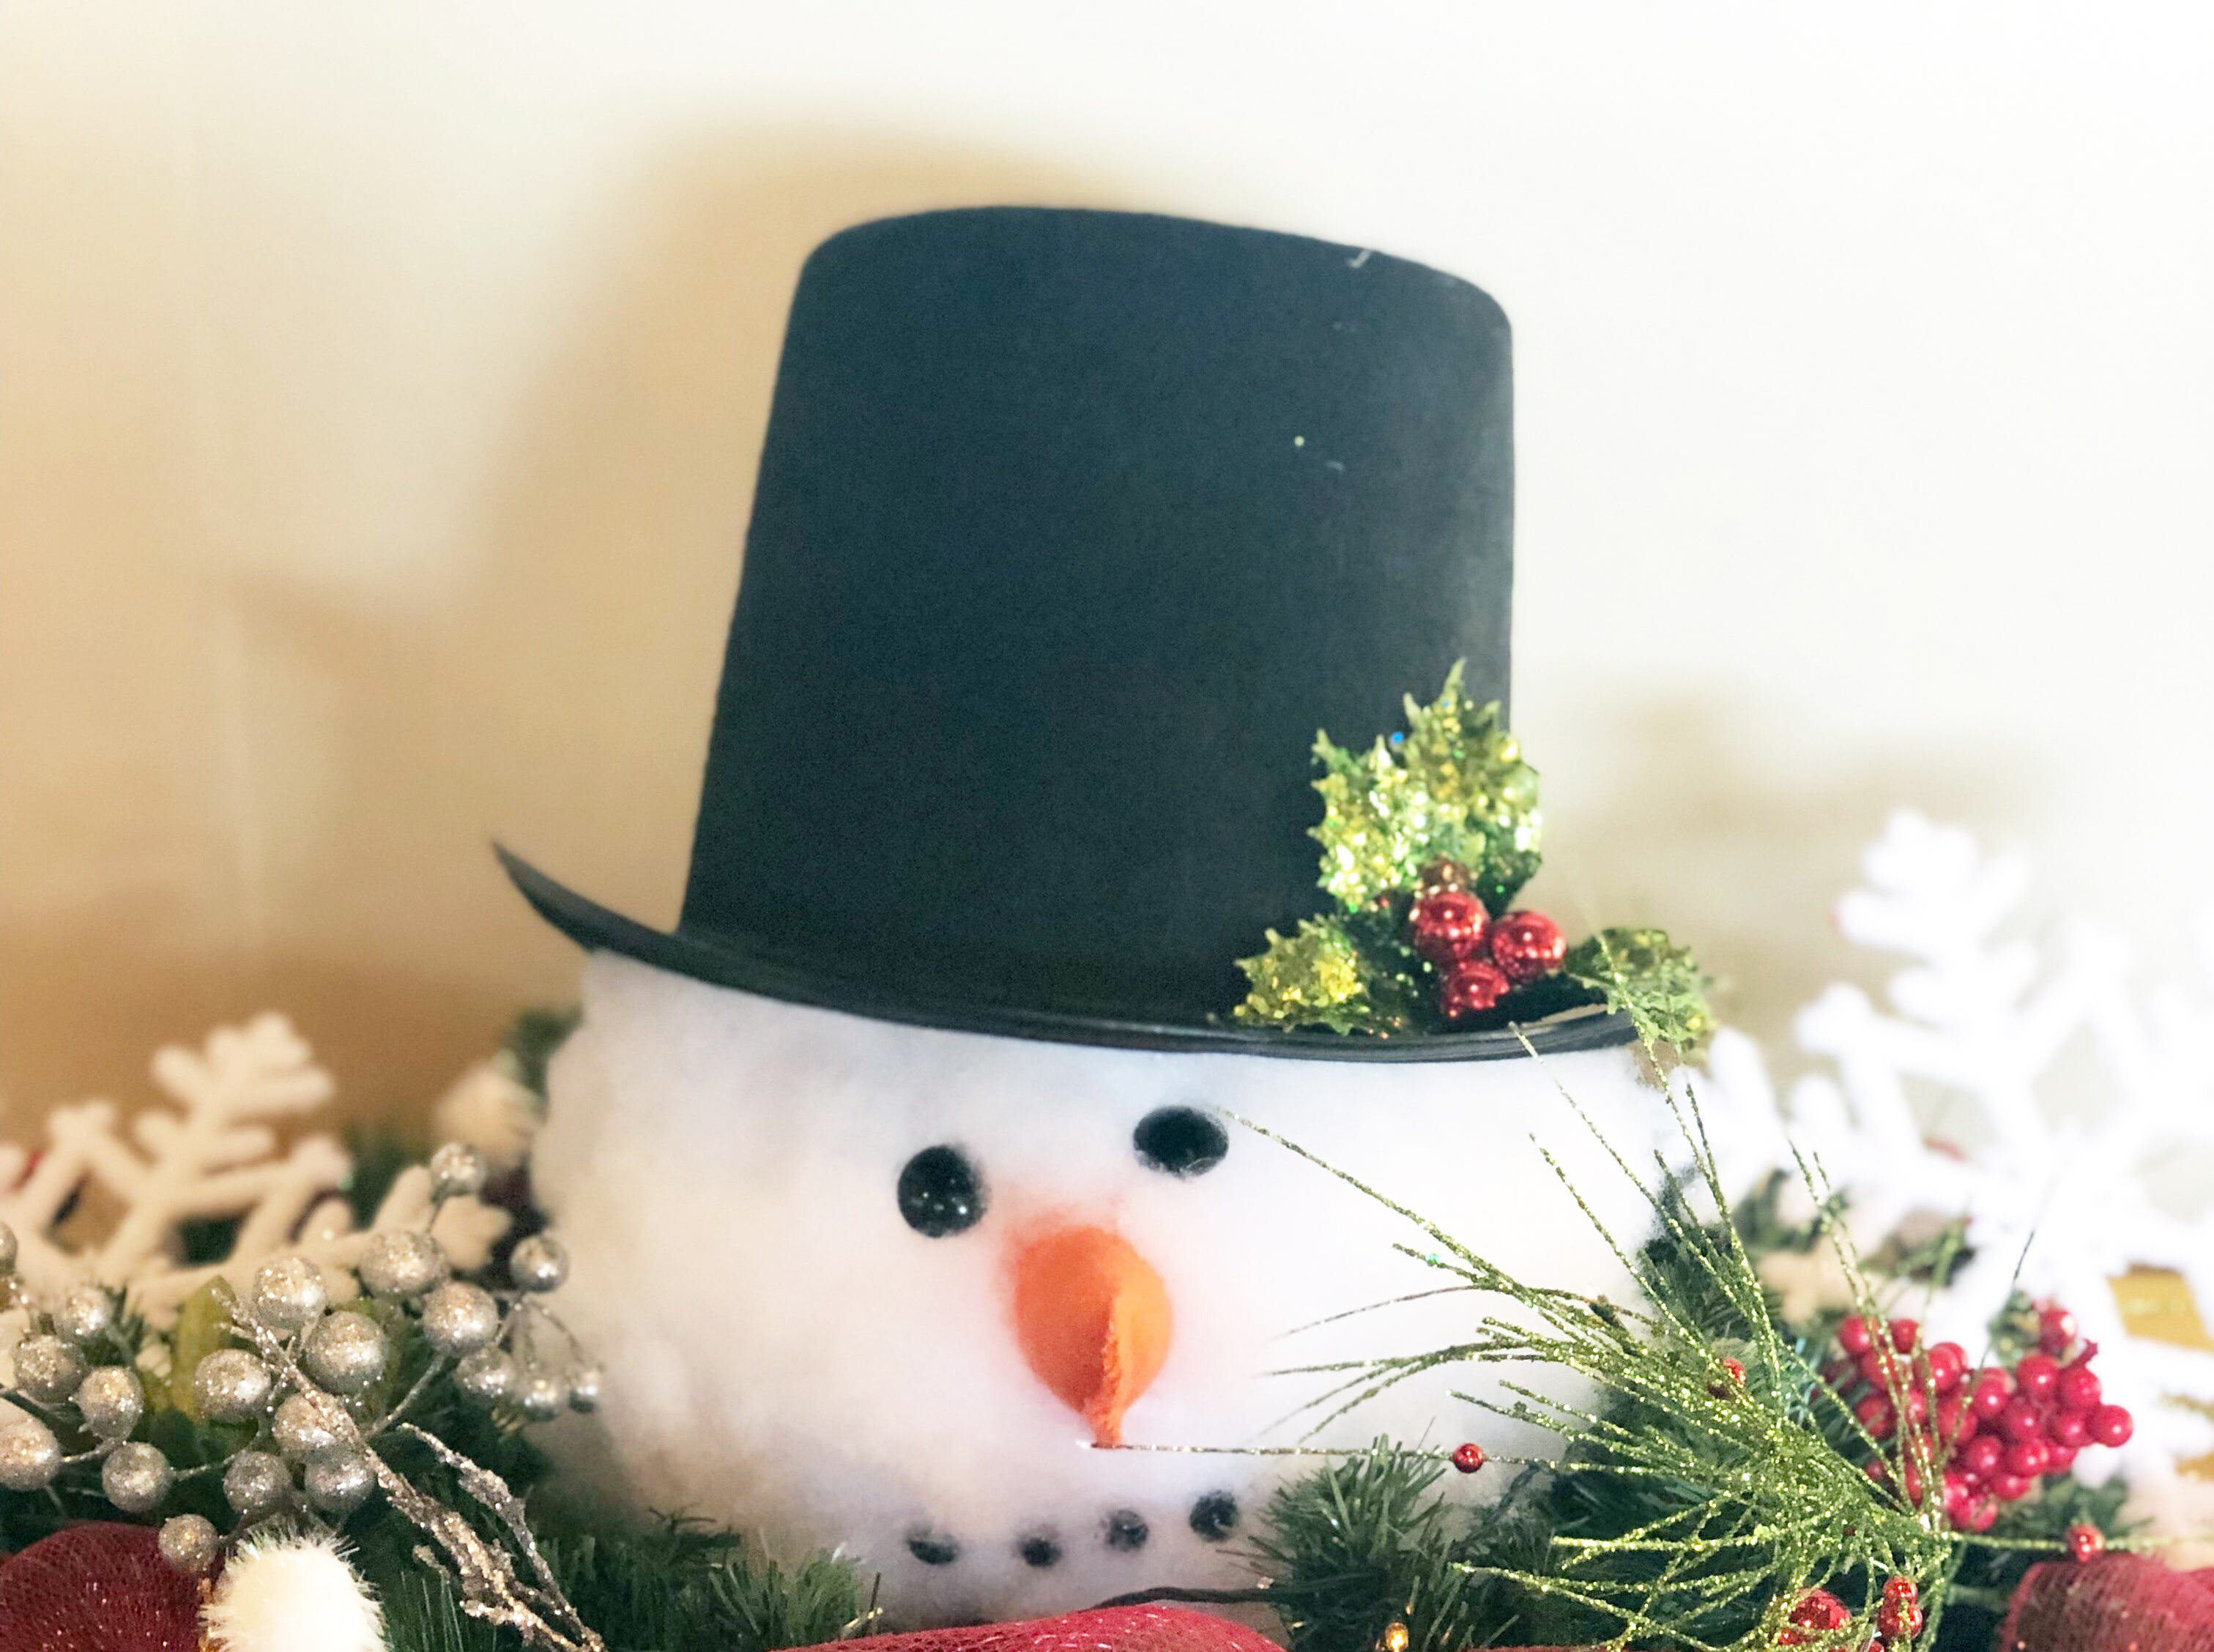 This snowman table decoration was used during the Halls Crossroads Women's League annual meeting in January. How much snow will Knoxville get this winter?